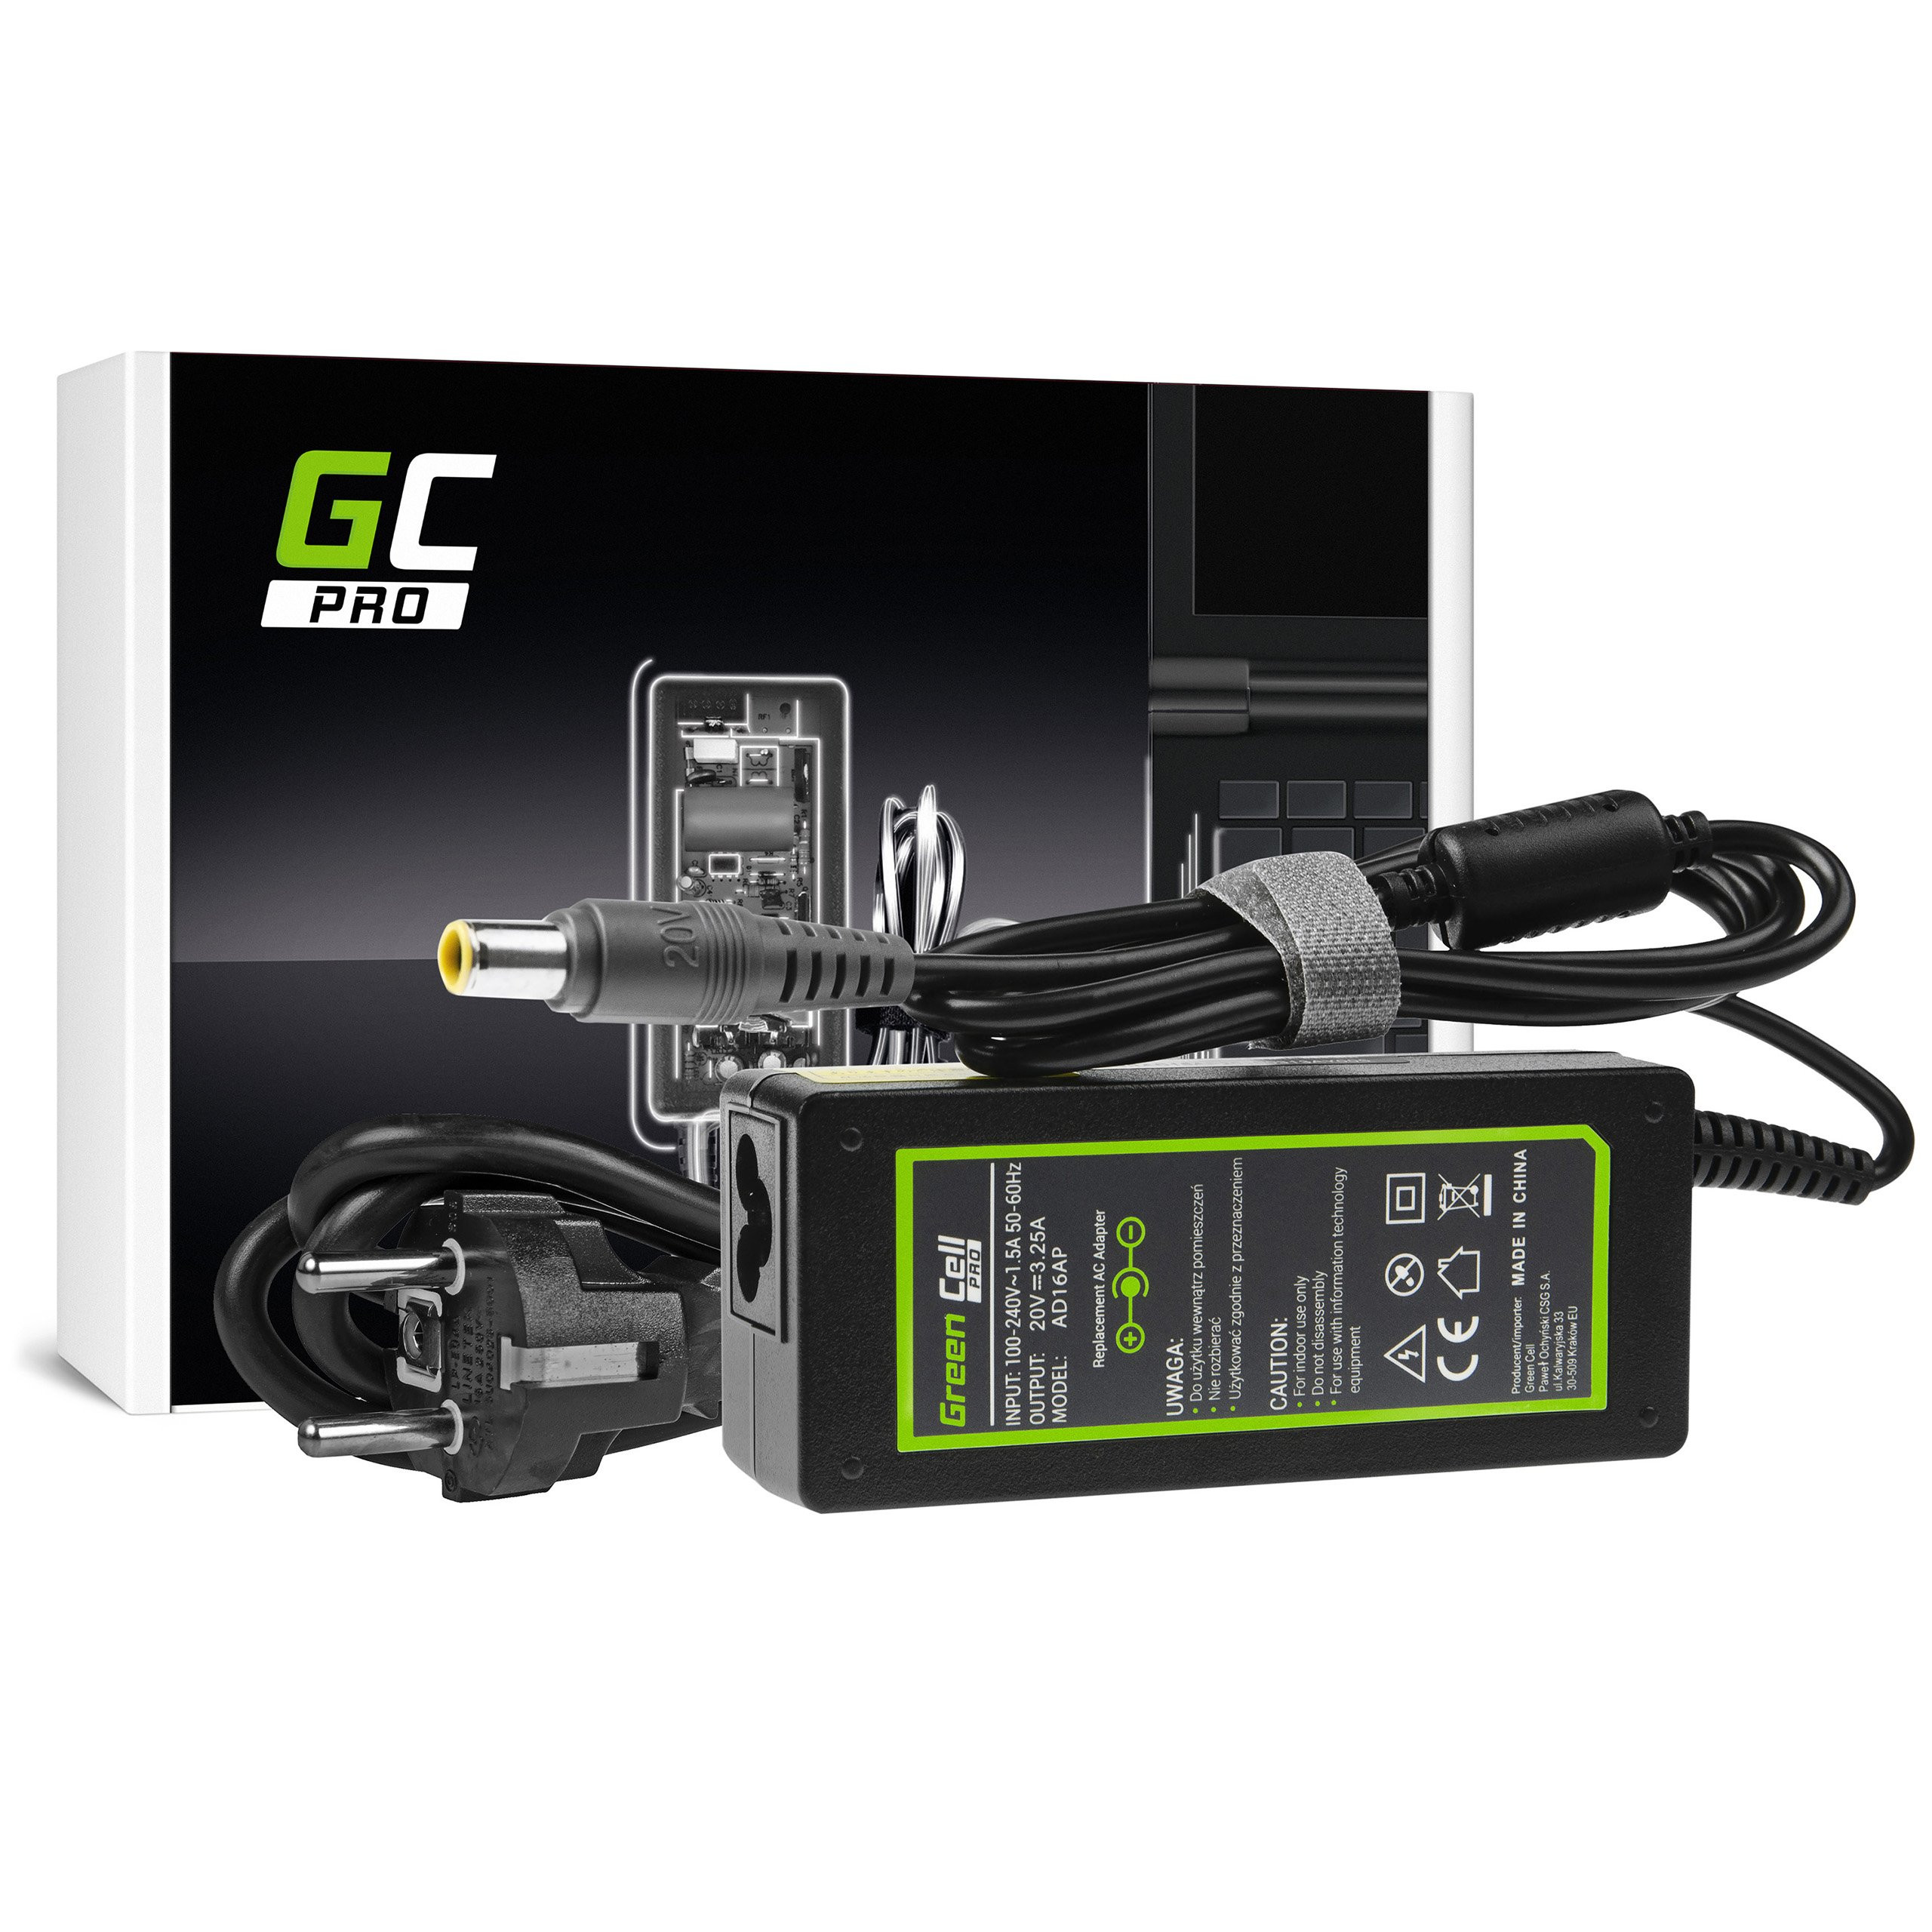 Green Cell PRO Charger AC Adapter 20V 3.25A 65W for Lenovo B590 ThinkPad R61 R500 T430 T430s T510 T520 T530 X200 X201 X220 X230